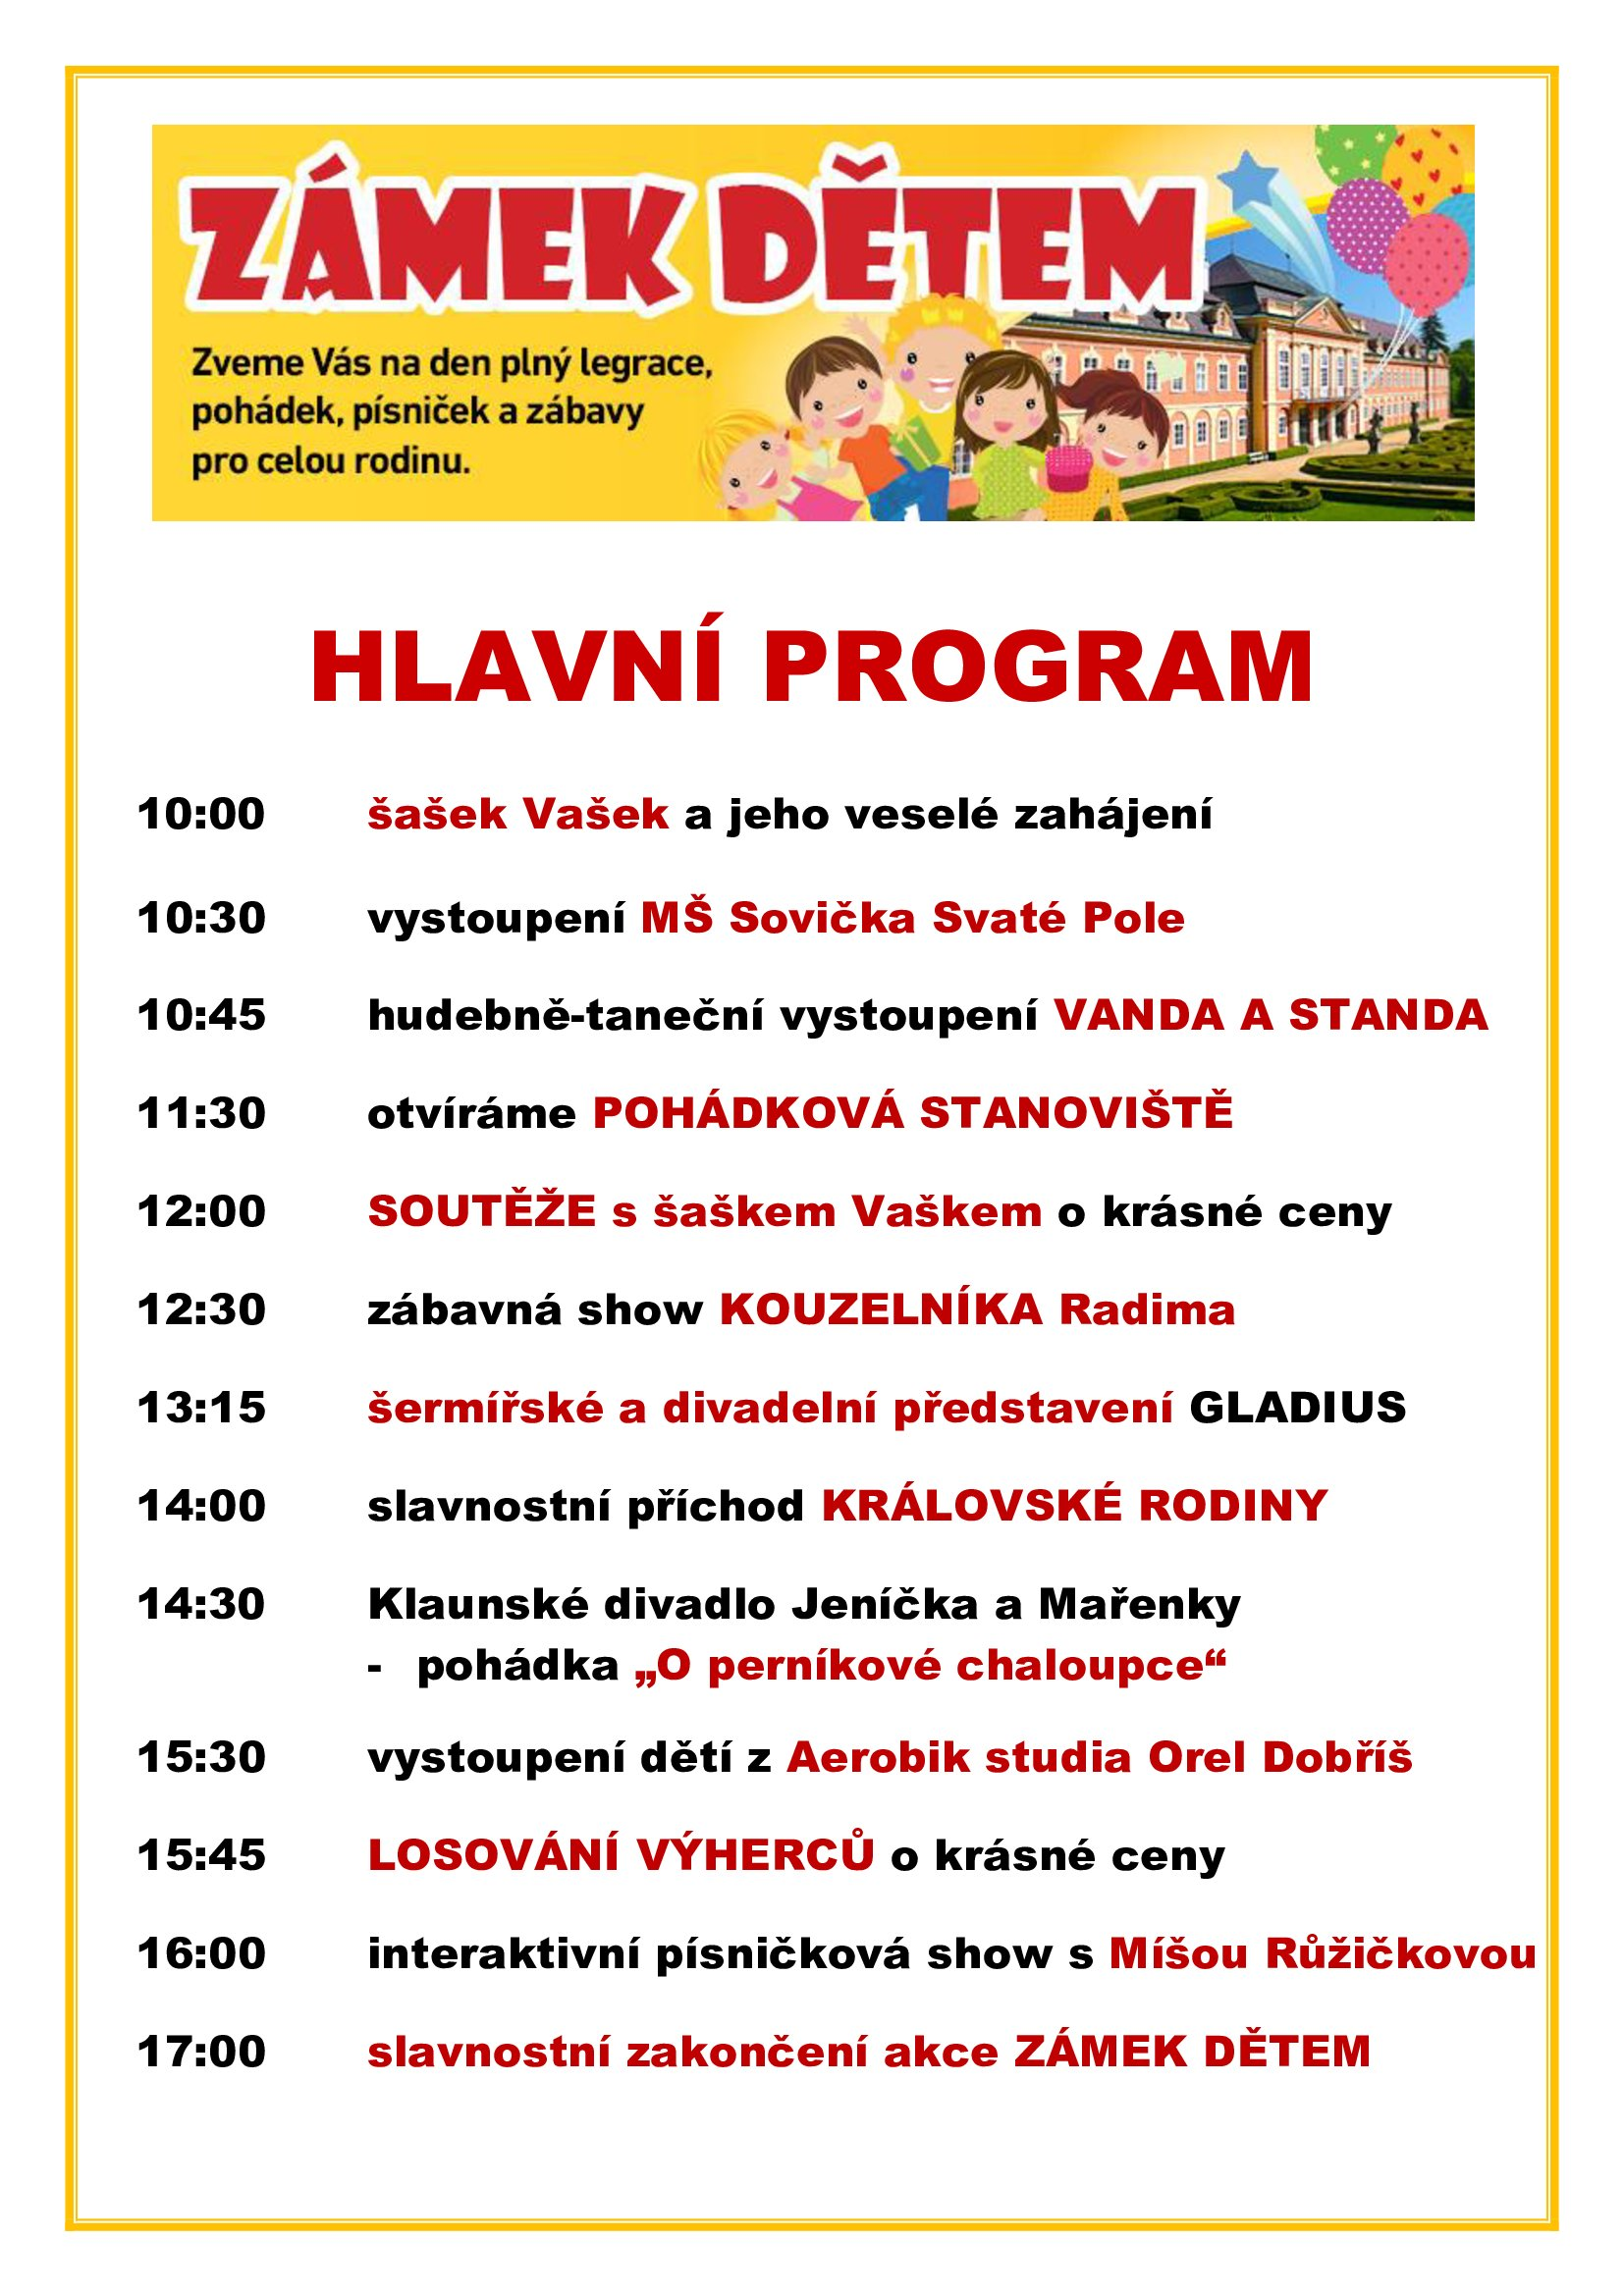 HLAVN PROGRAM 2017